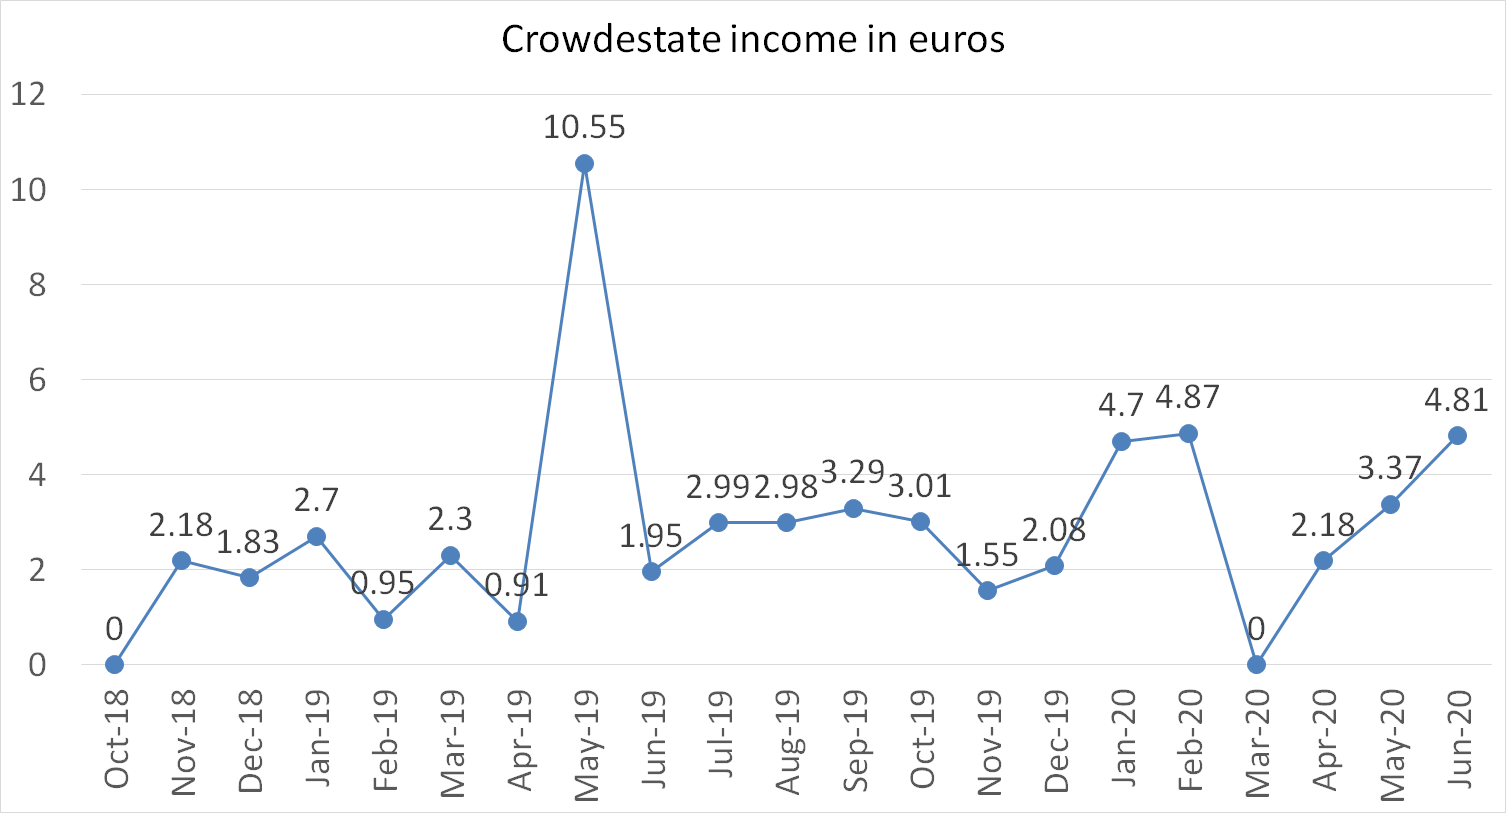 Crowdestate income in euros june 2020